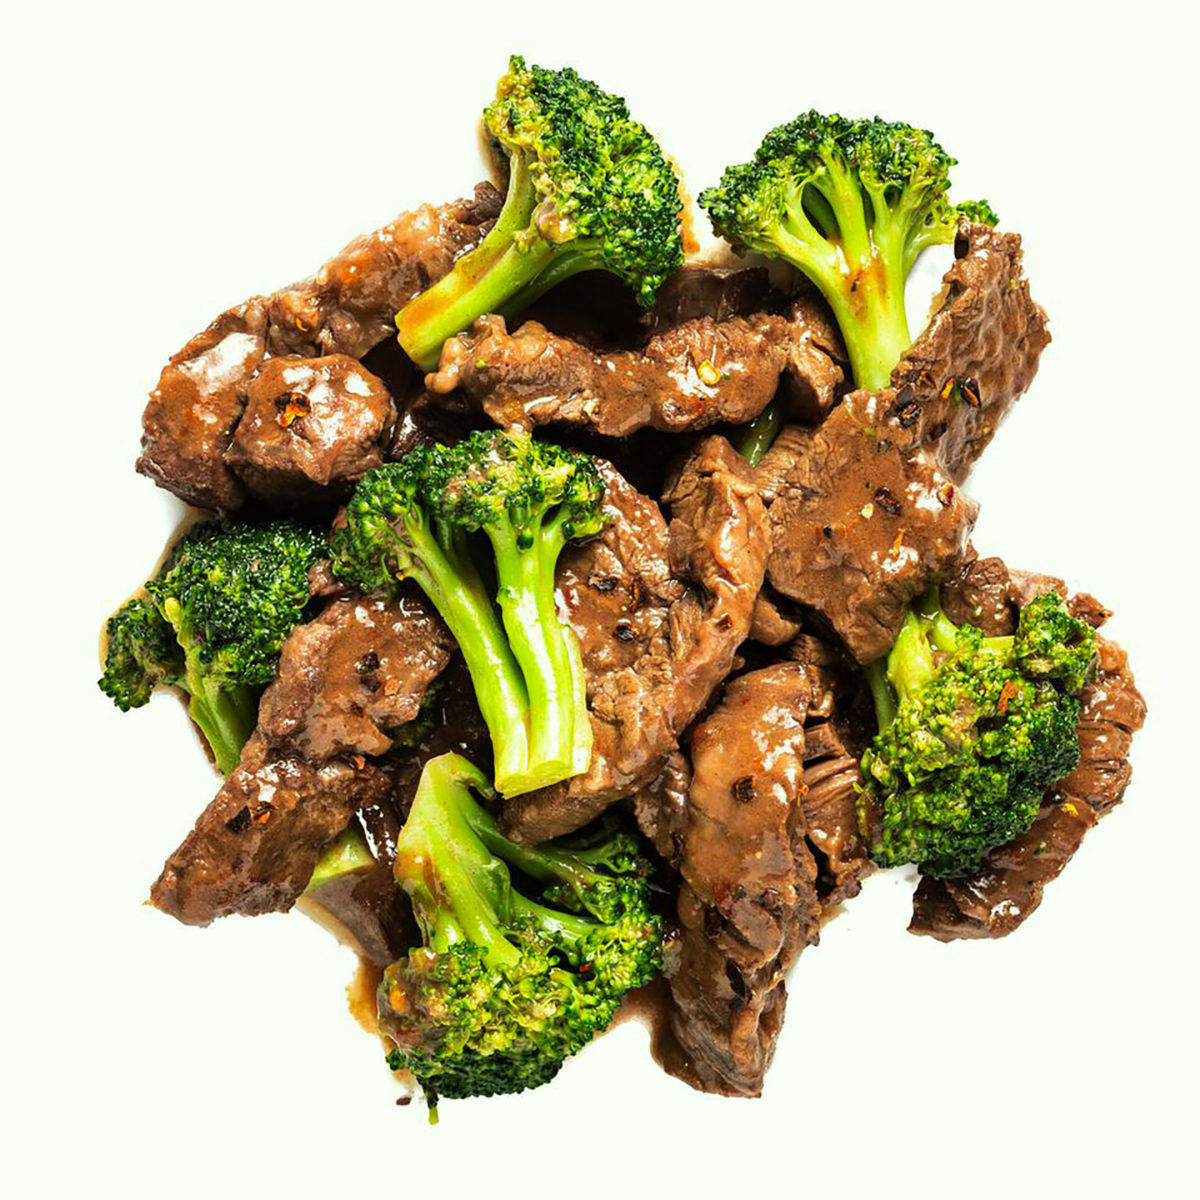 Gluten Free Beef and Broccoli Stir-Fry